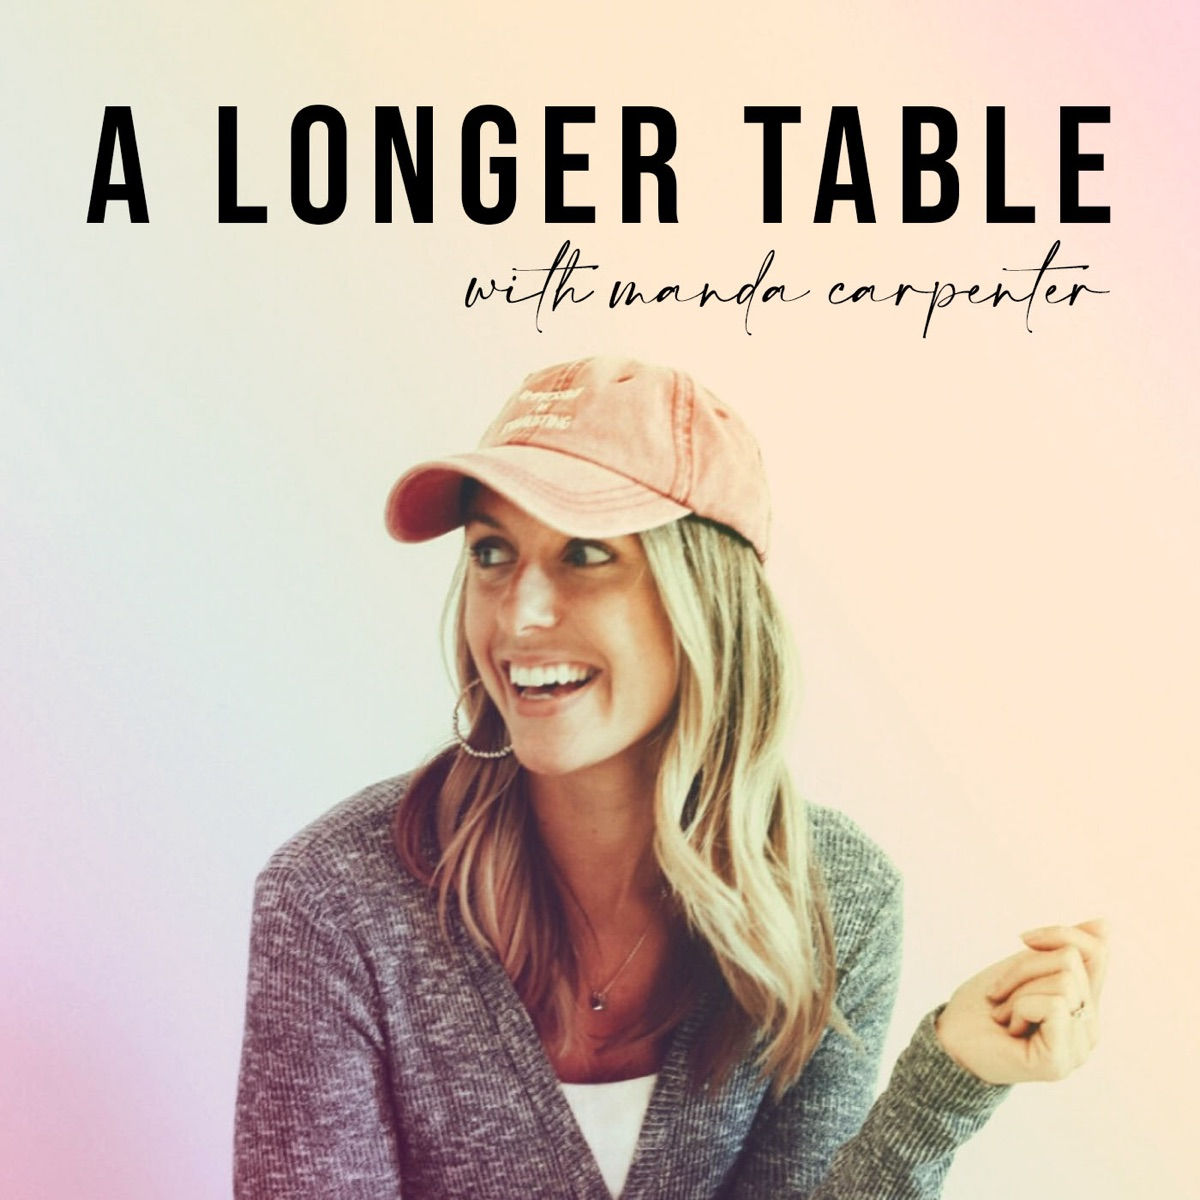 A Longer Table with Manda Carpenter